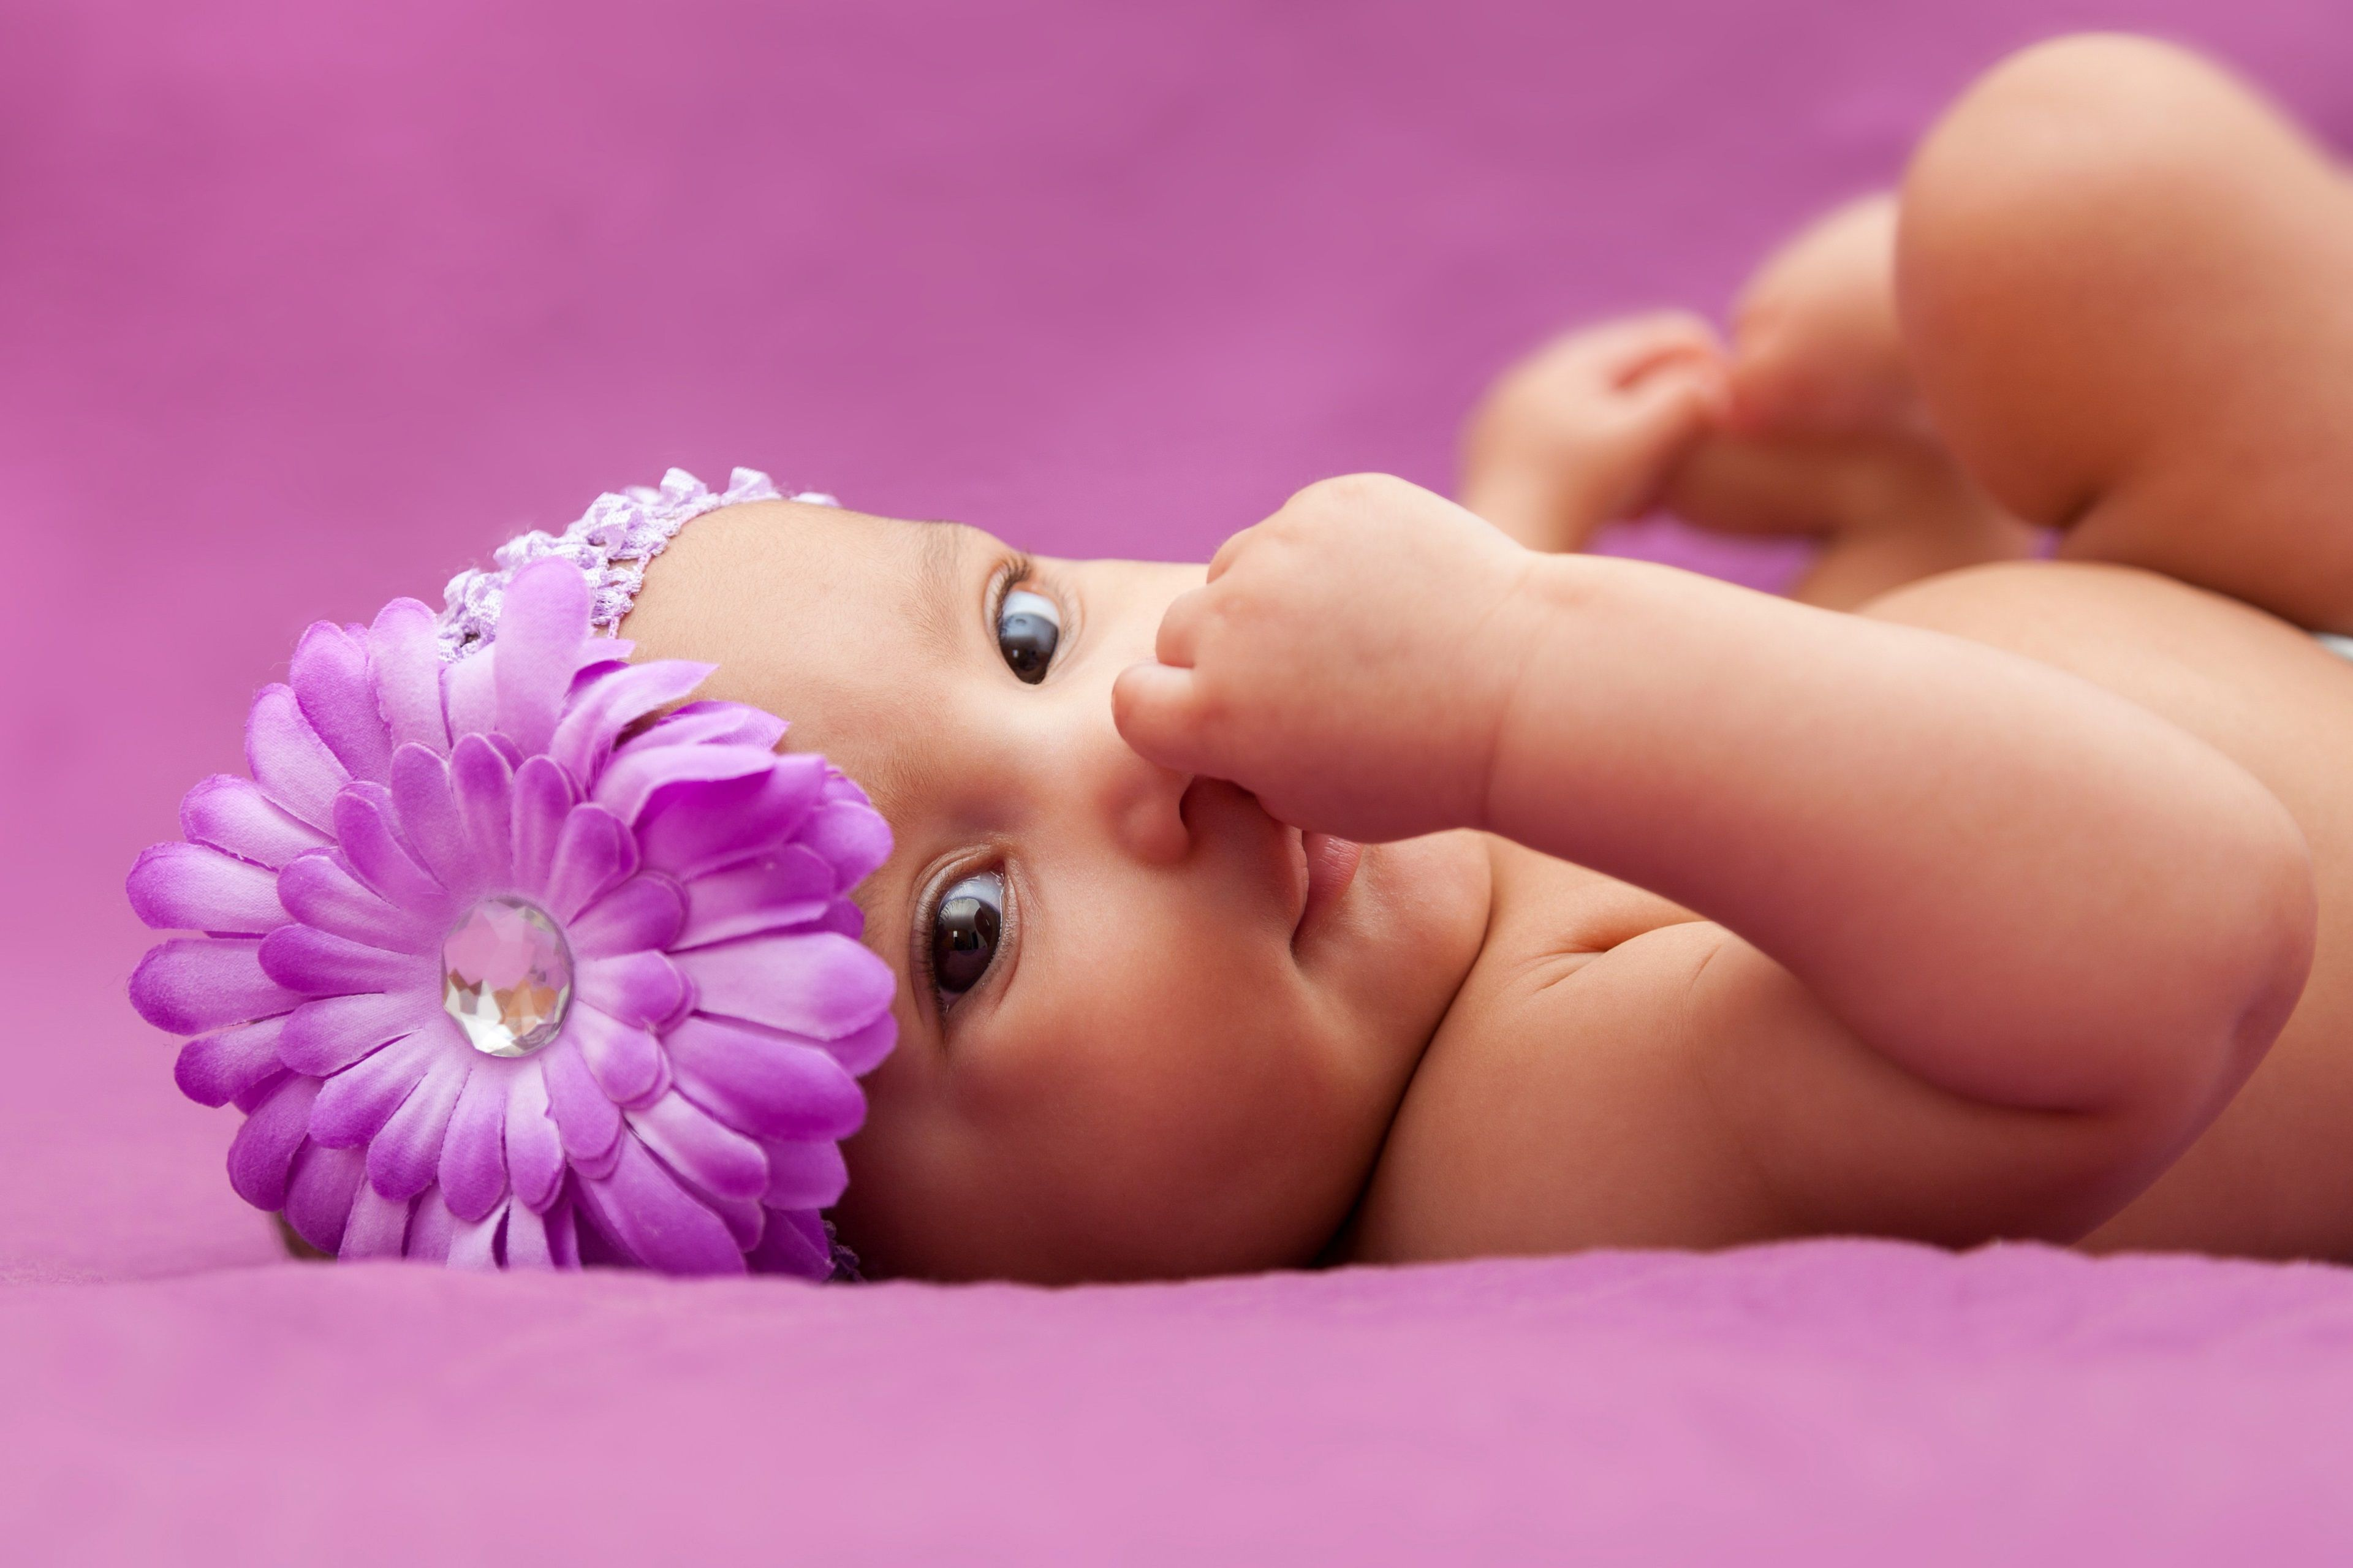 3840x2559 Cute Baby 4k Widescreen Hd Wallpaper New Baby Products Newborn Baby Photography Baby Girl Wallpaper